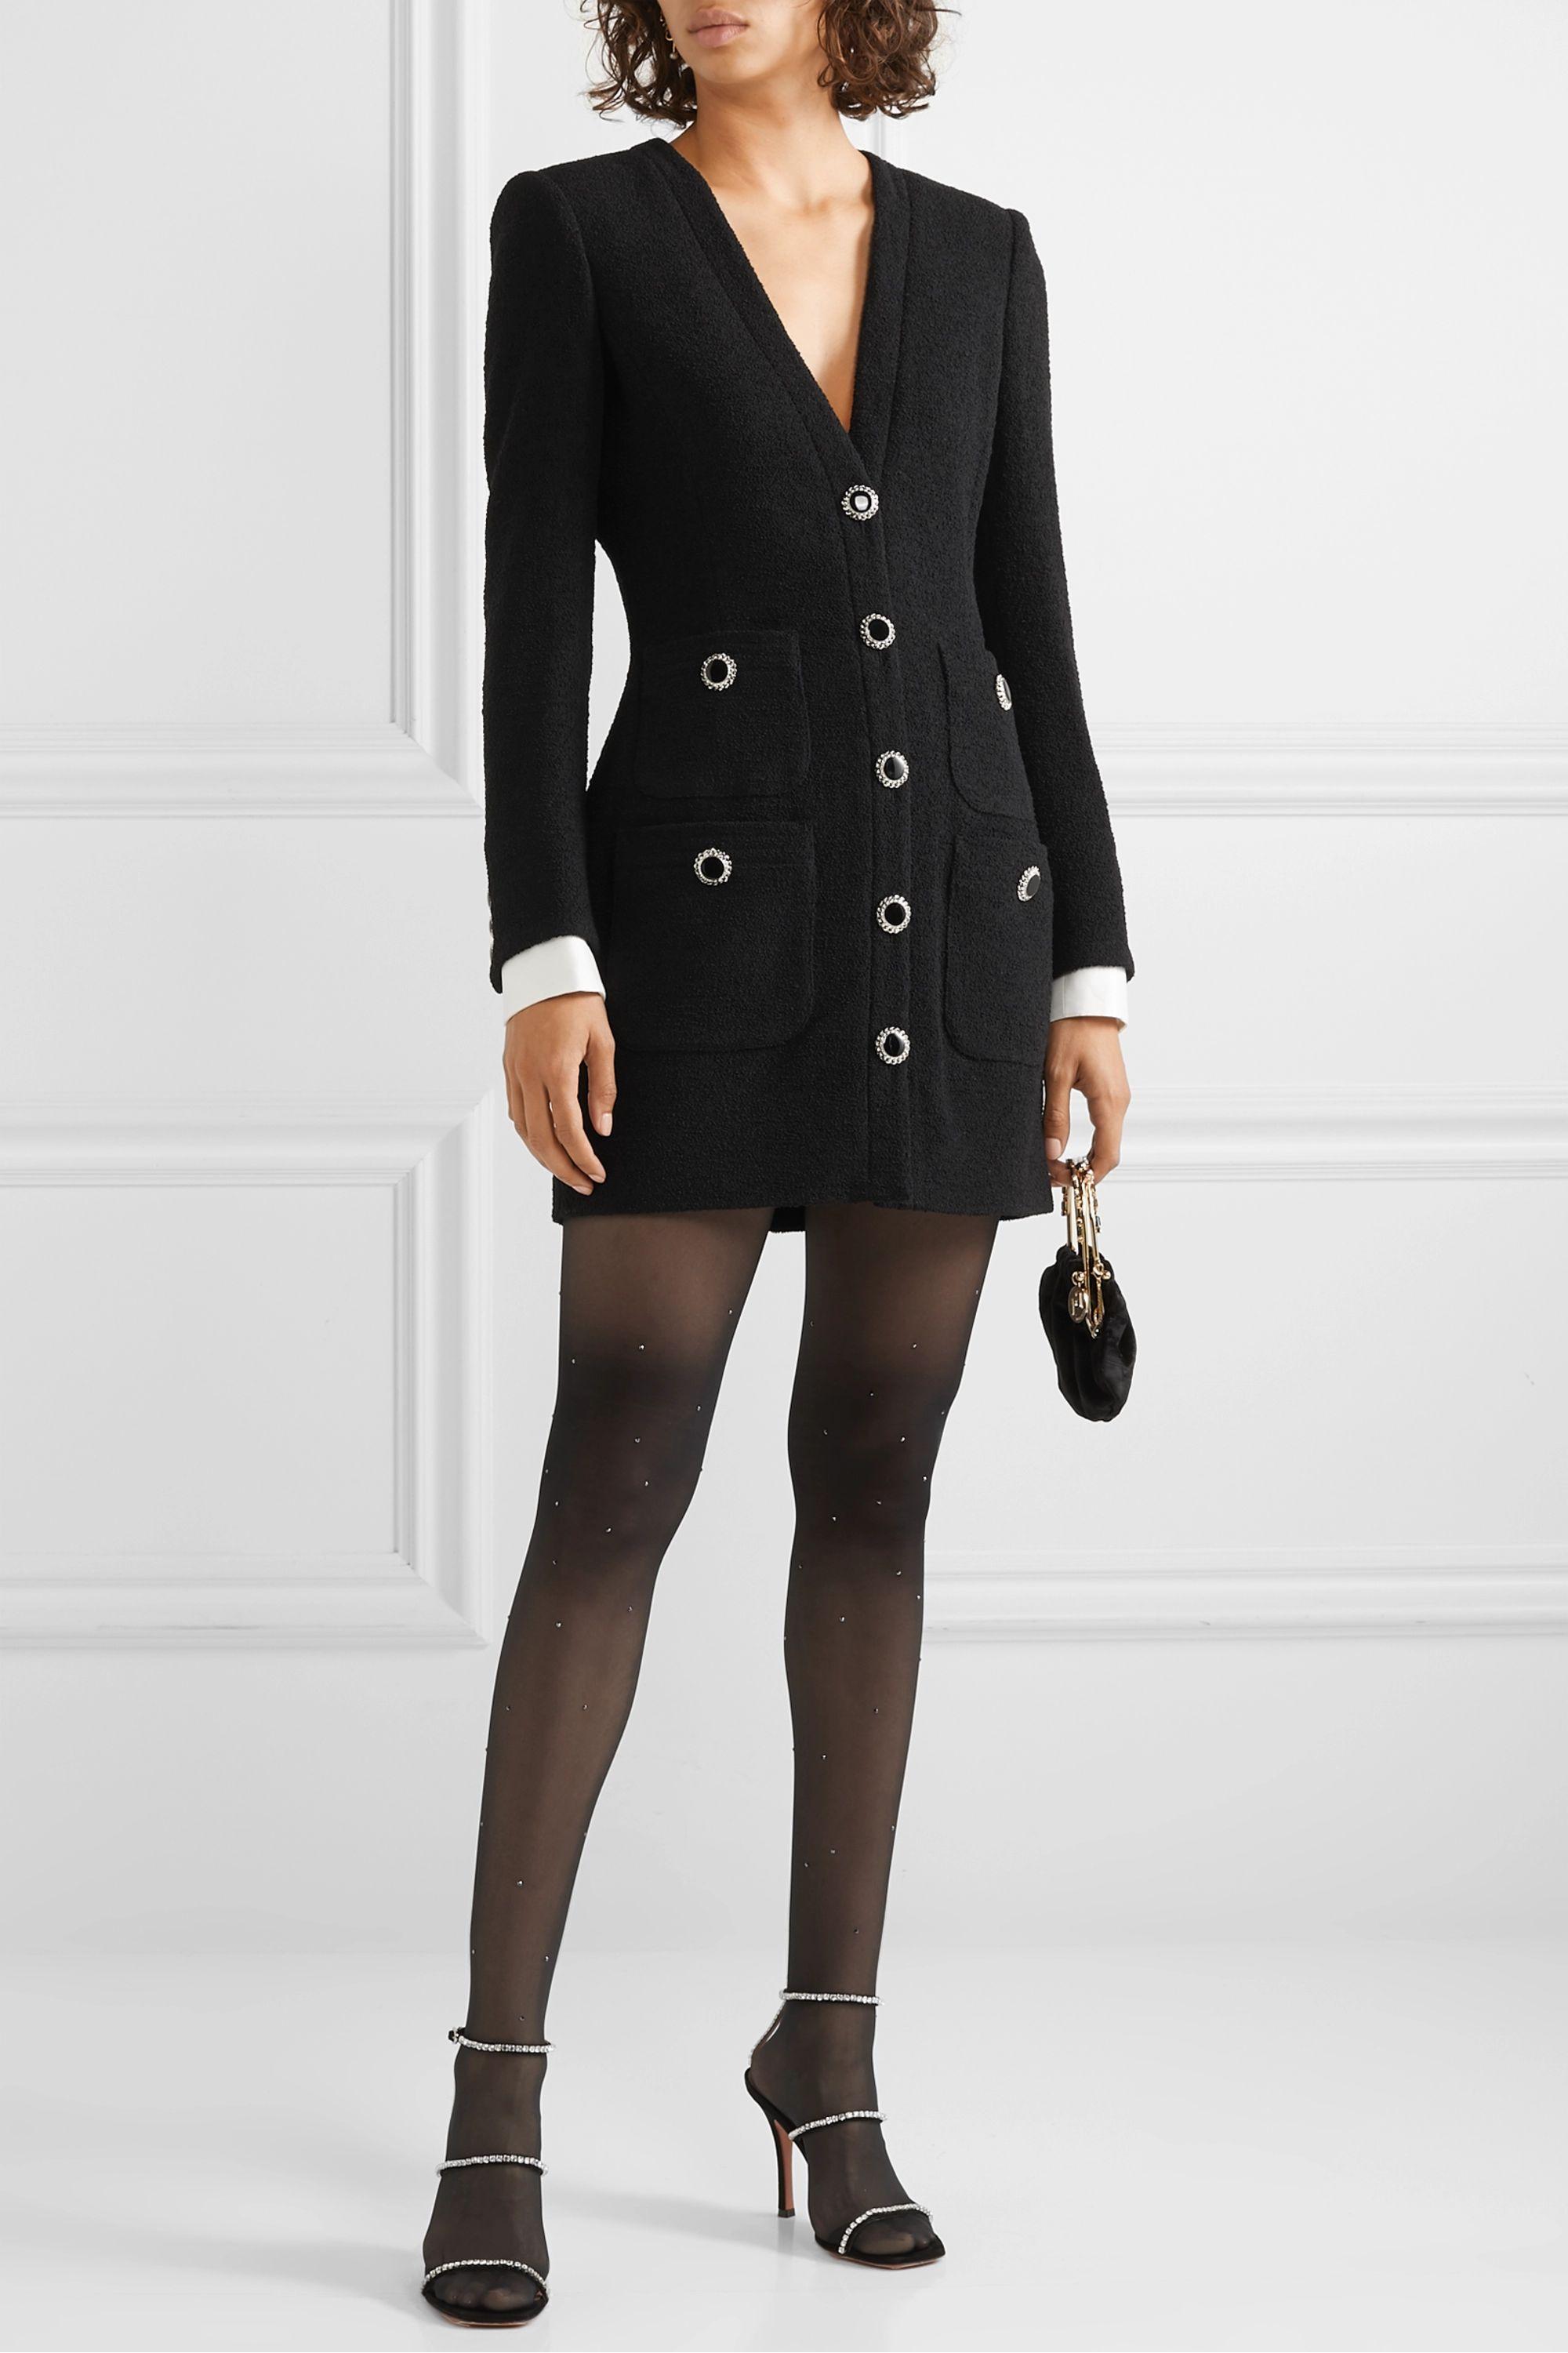 Wolford Swarovski crystal-embellished tights